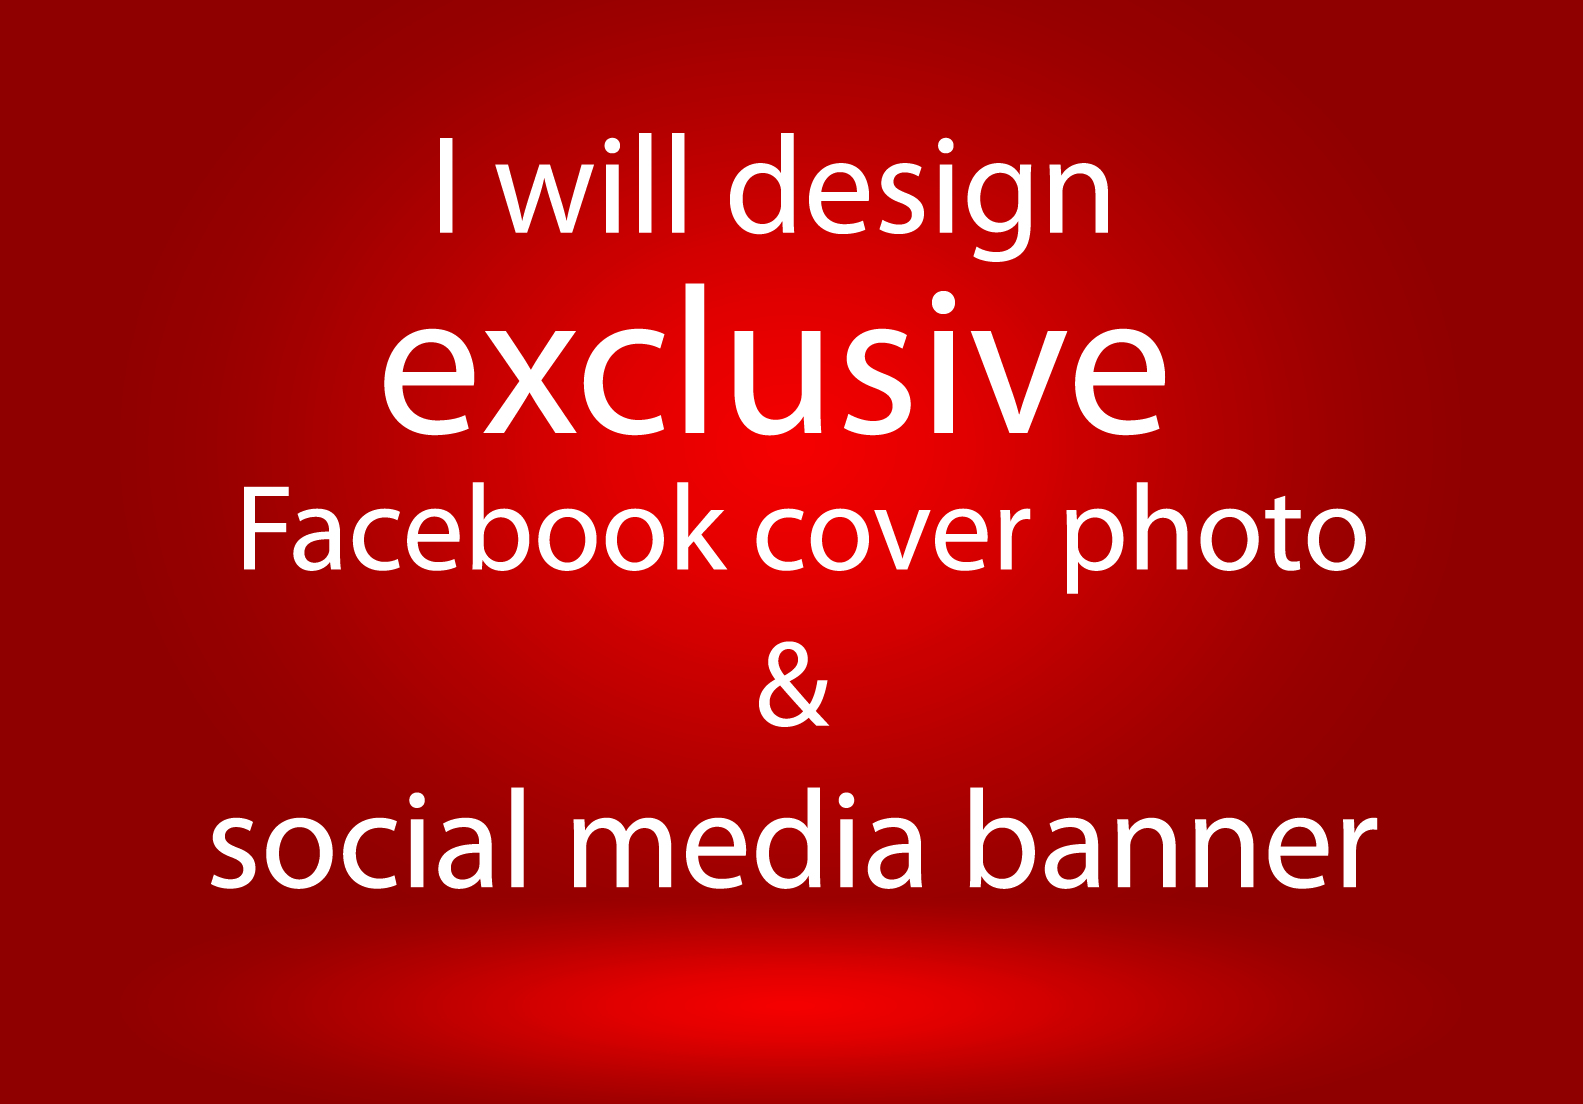 I will design exclusive Facebook cover photo & social media banner